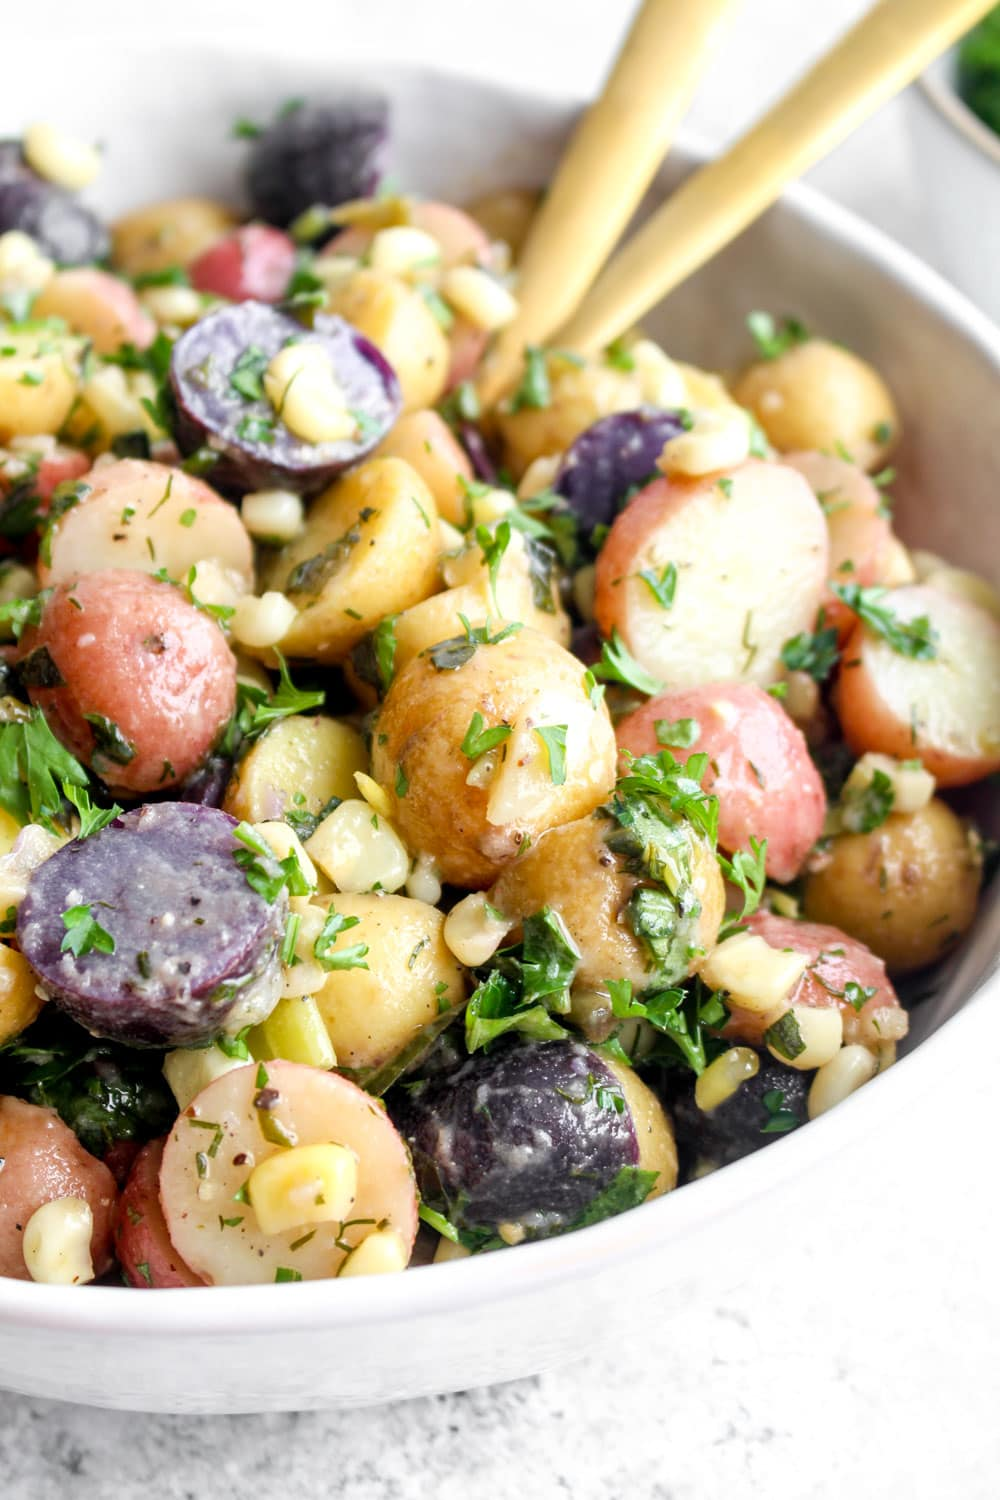 Sweet Corn Potato Salad in a bowl with herbs.